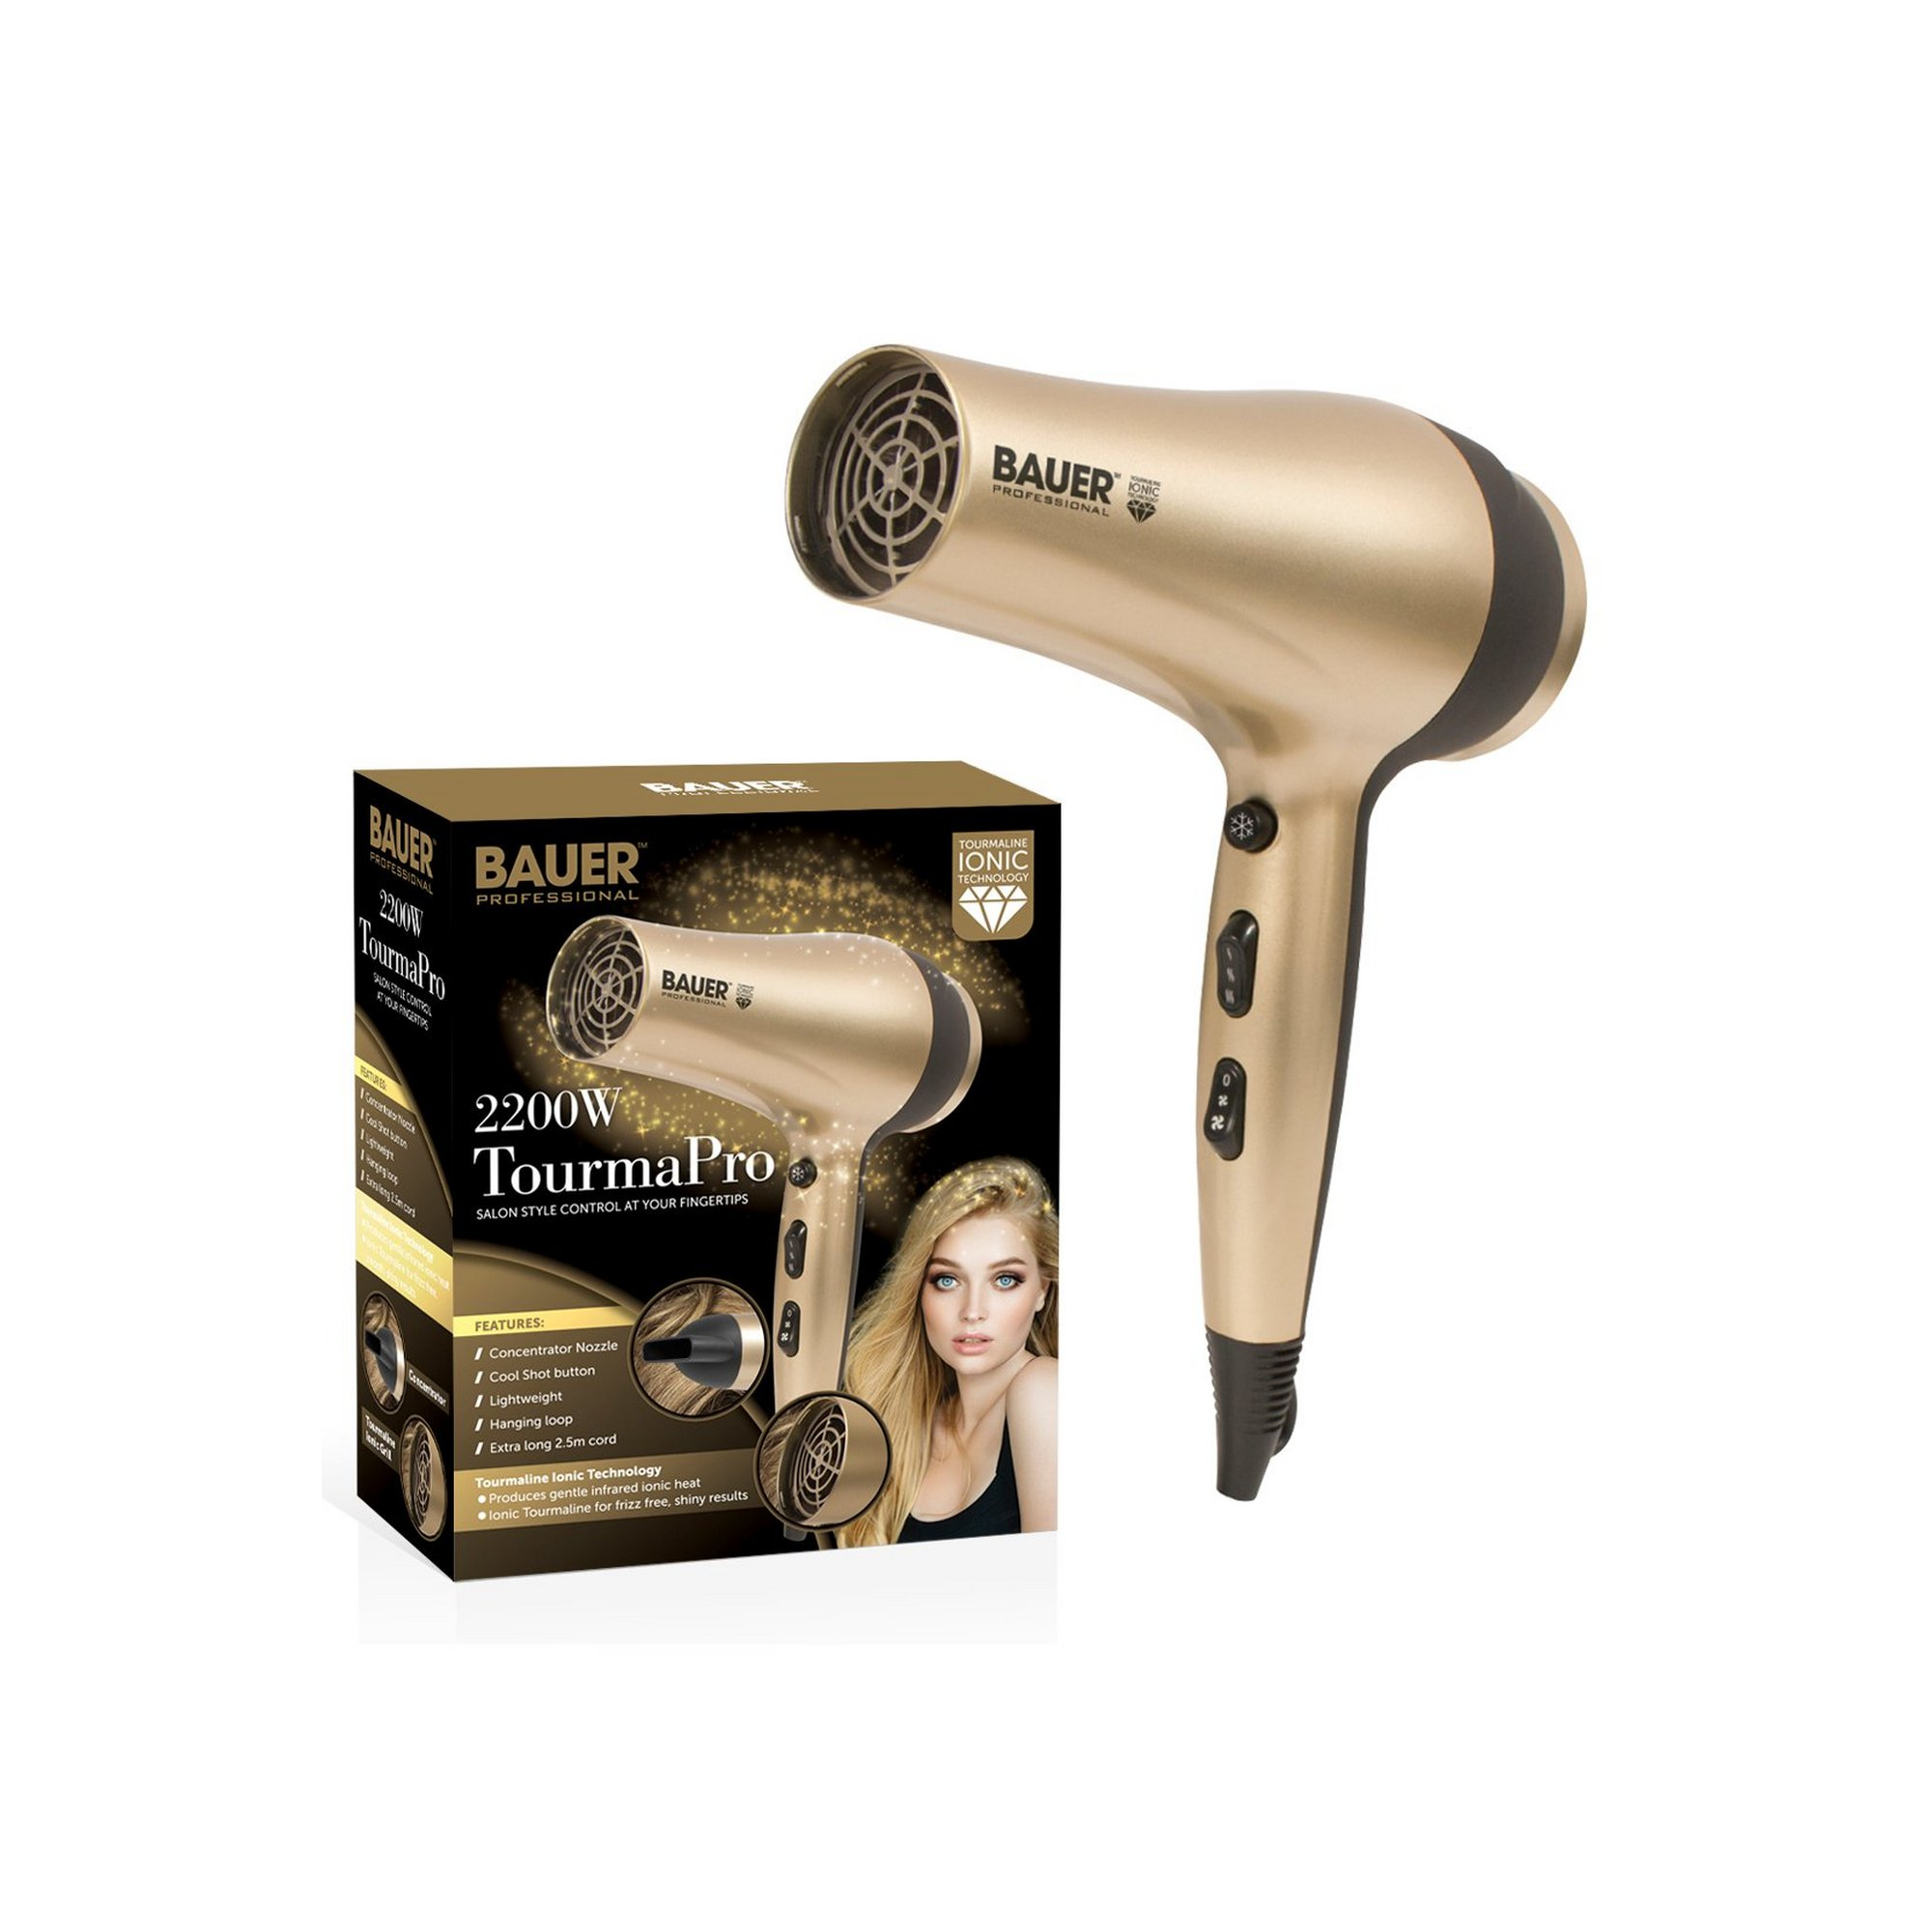 Image of Bauer Tourma Pro Ionic Hair Dryer